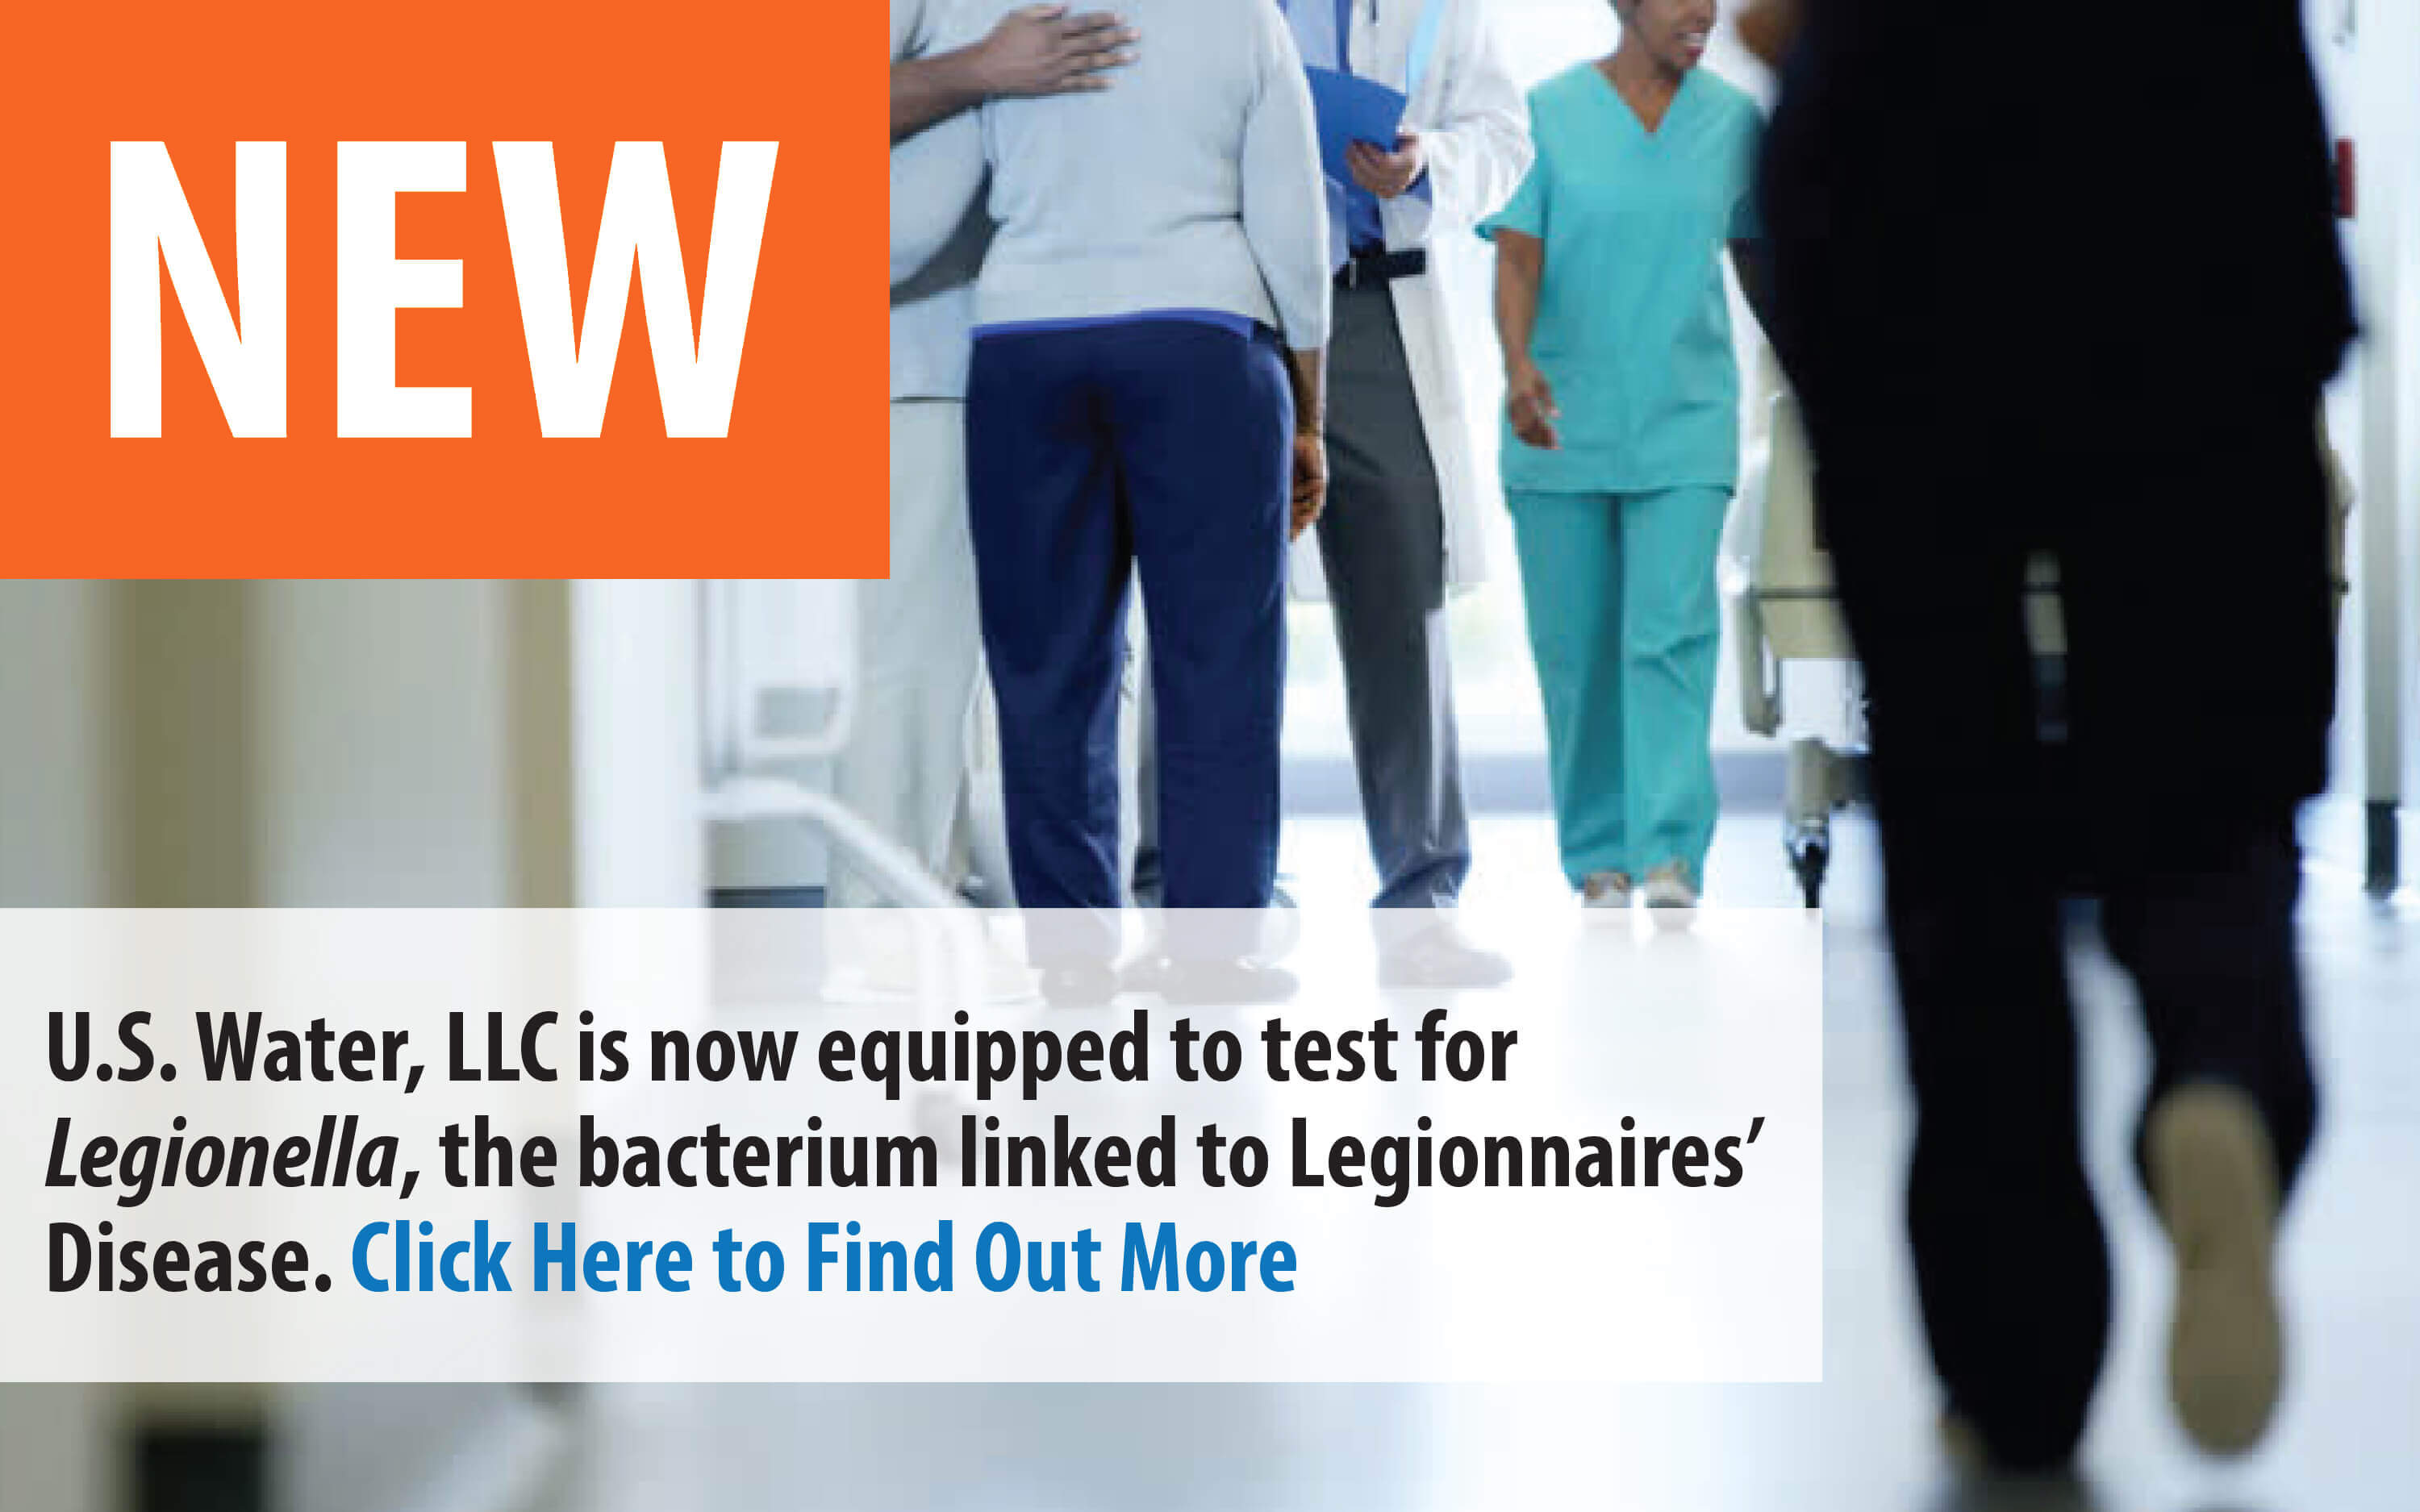 U.S. Water, LLC is now equipped to test for Legionella bacteria